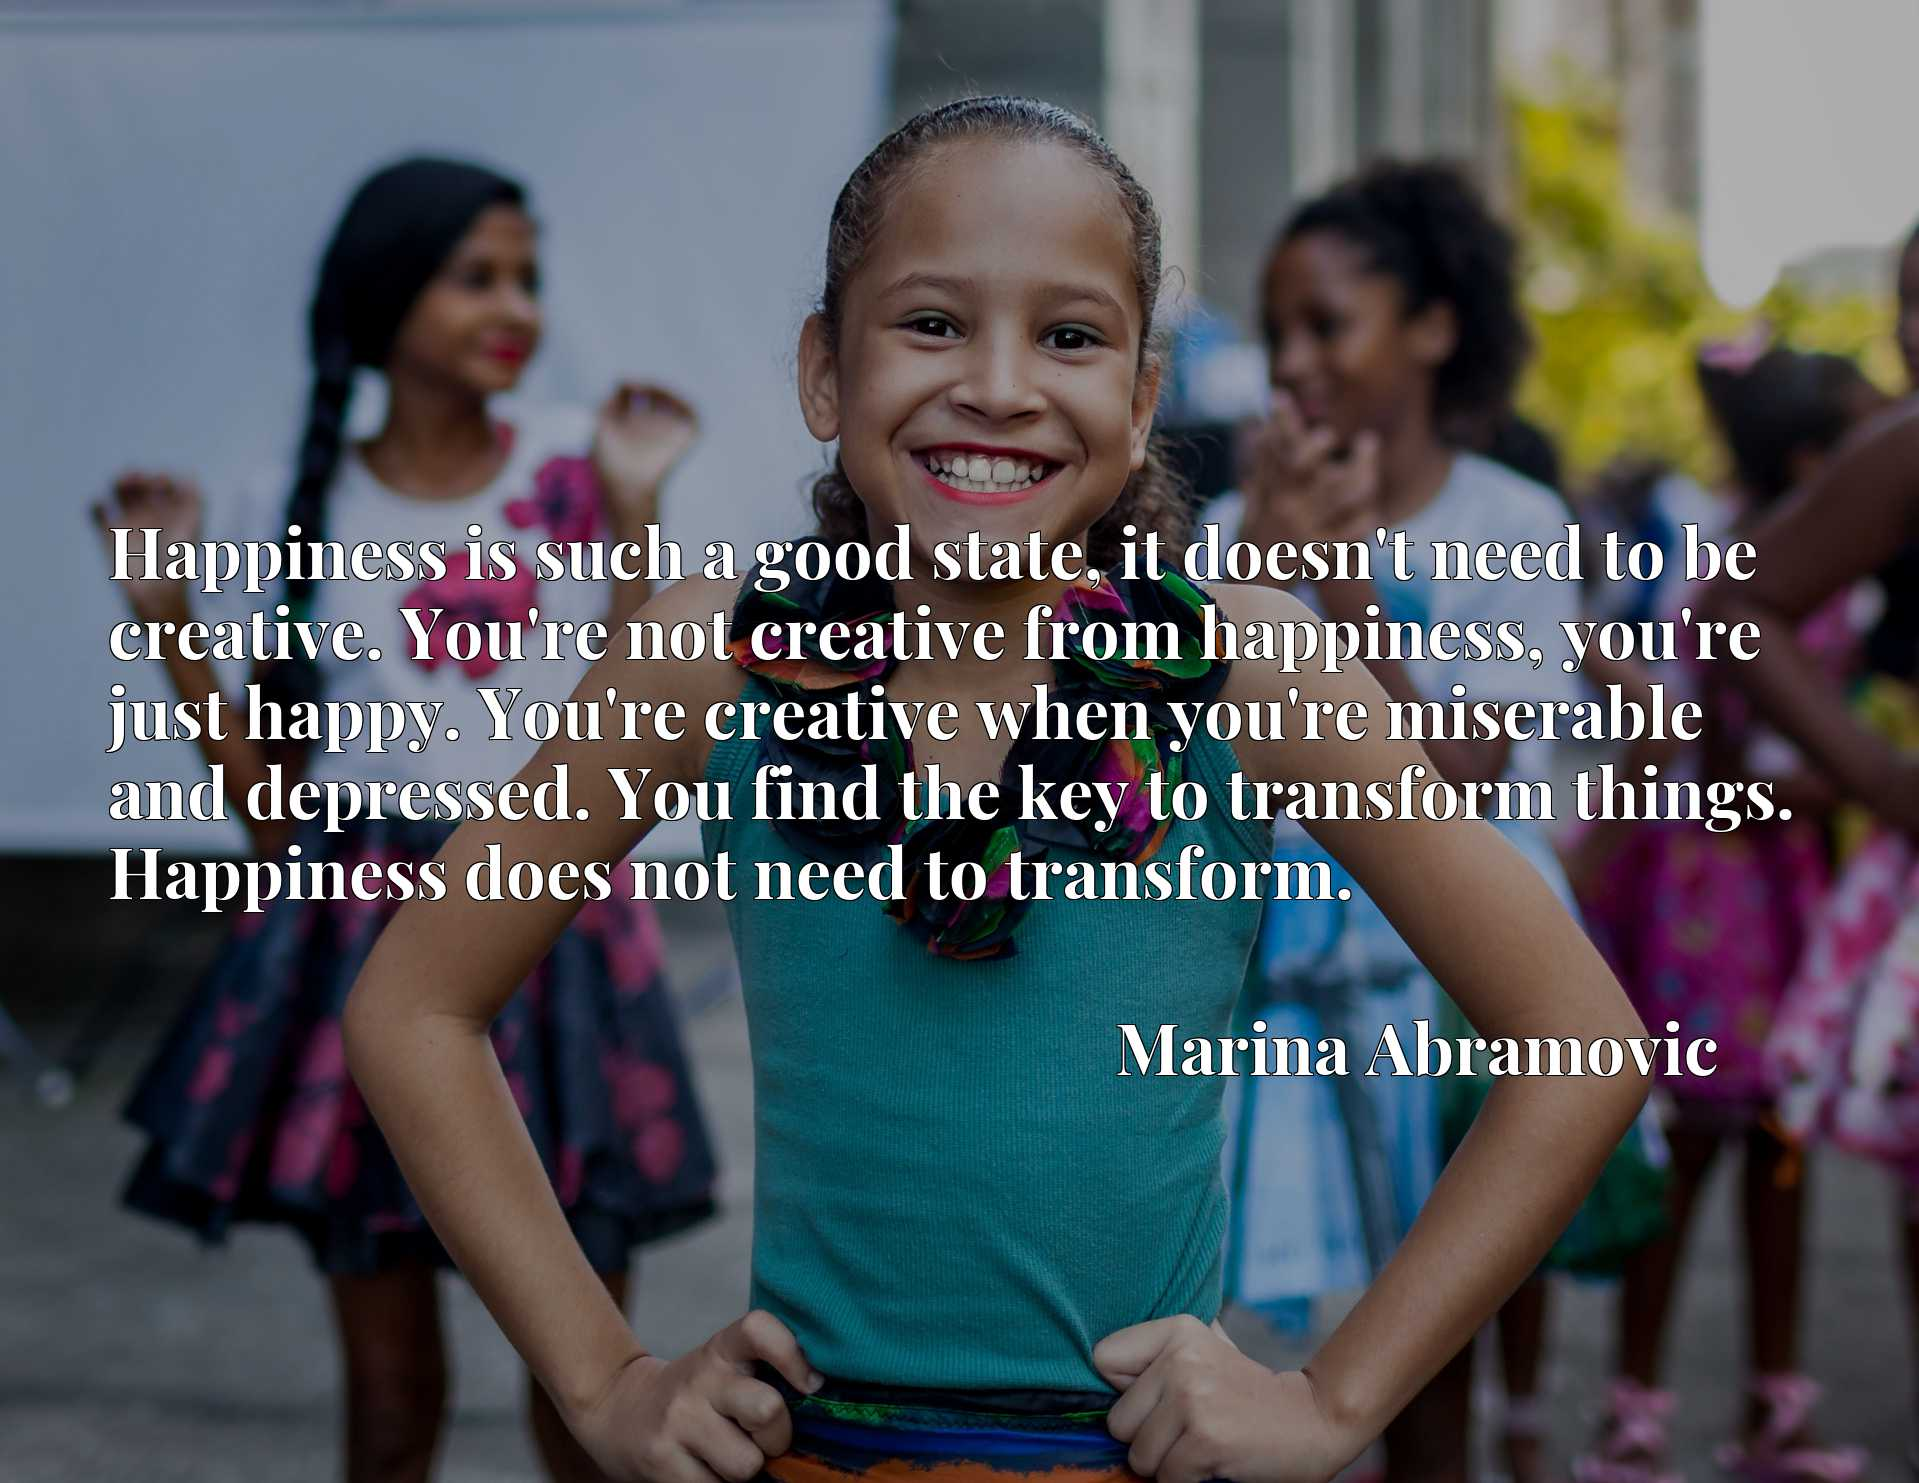 Happiness is such a good state, it doesn't need to be creative. You're not creative from happiness, you're just happy. You're creative when you're miserable and depressed. You find the key to transform things. Happiness does not need to transform.